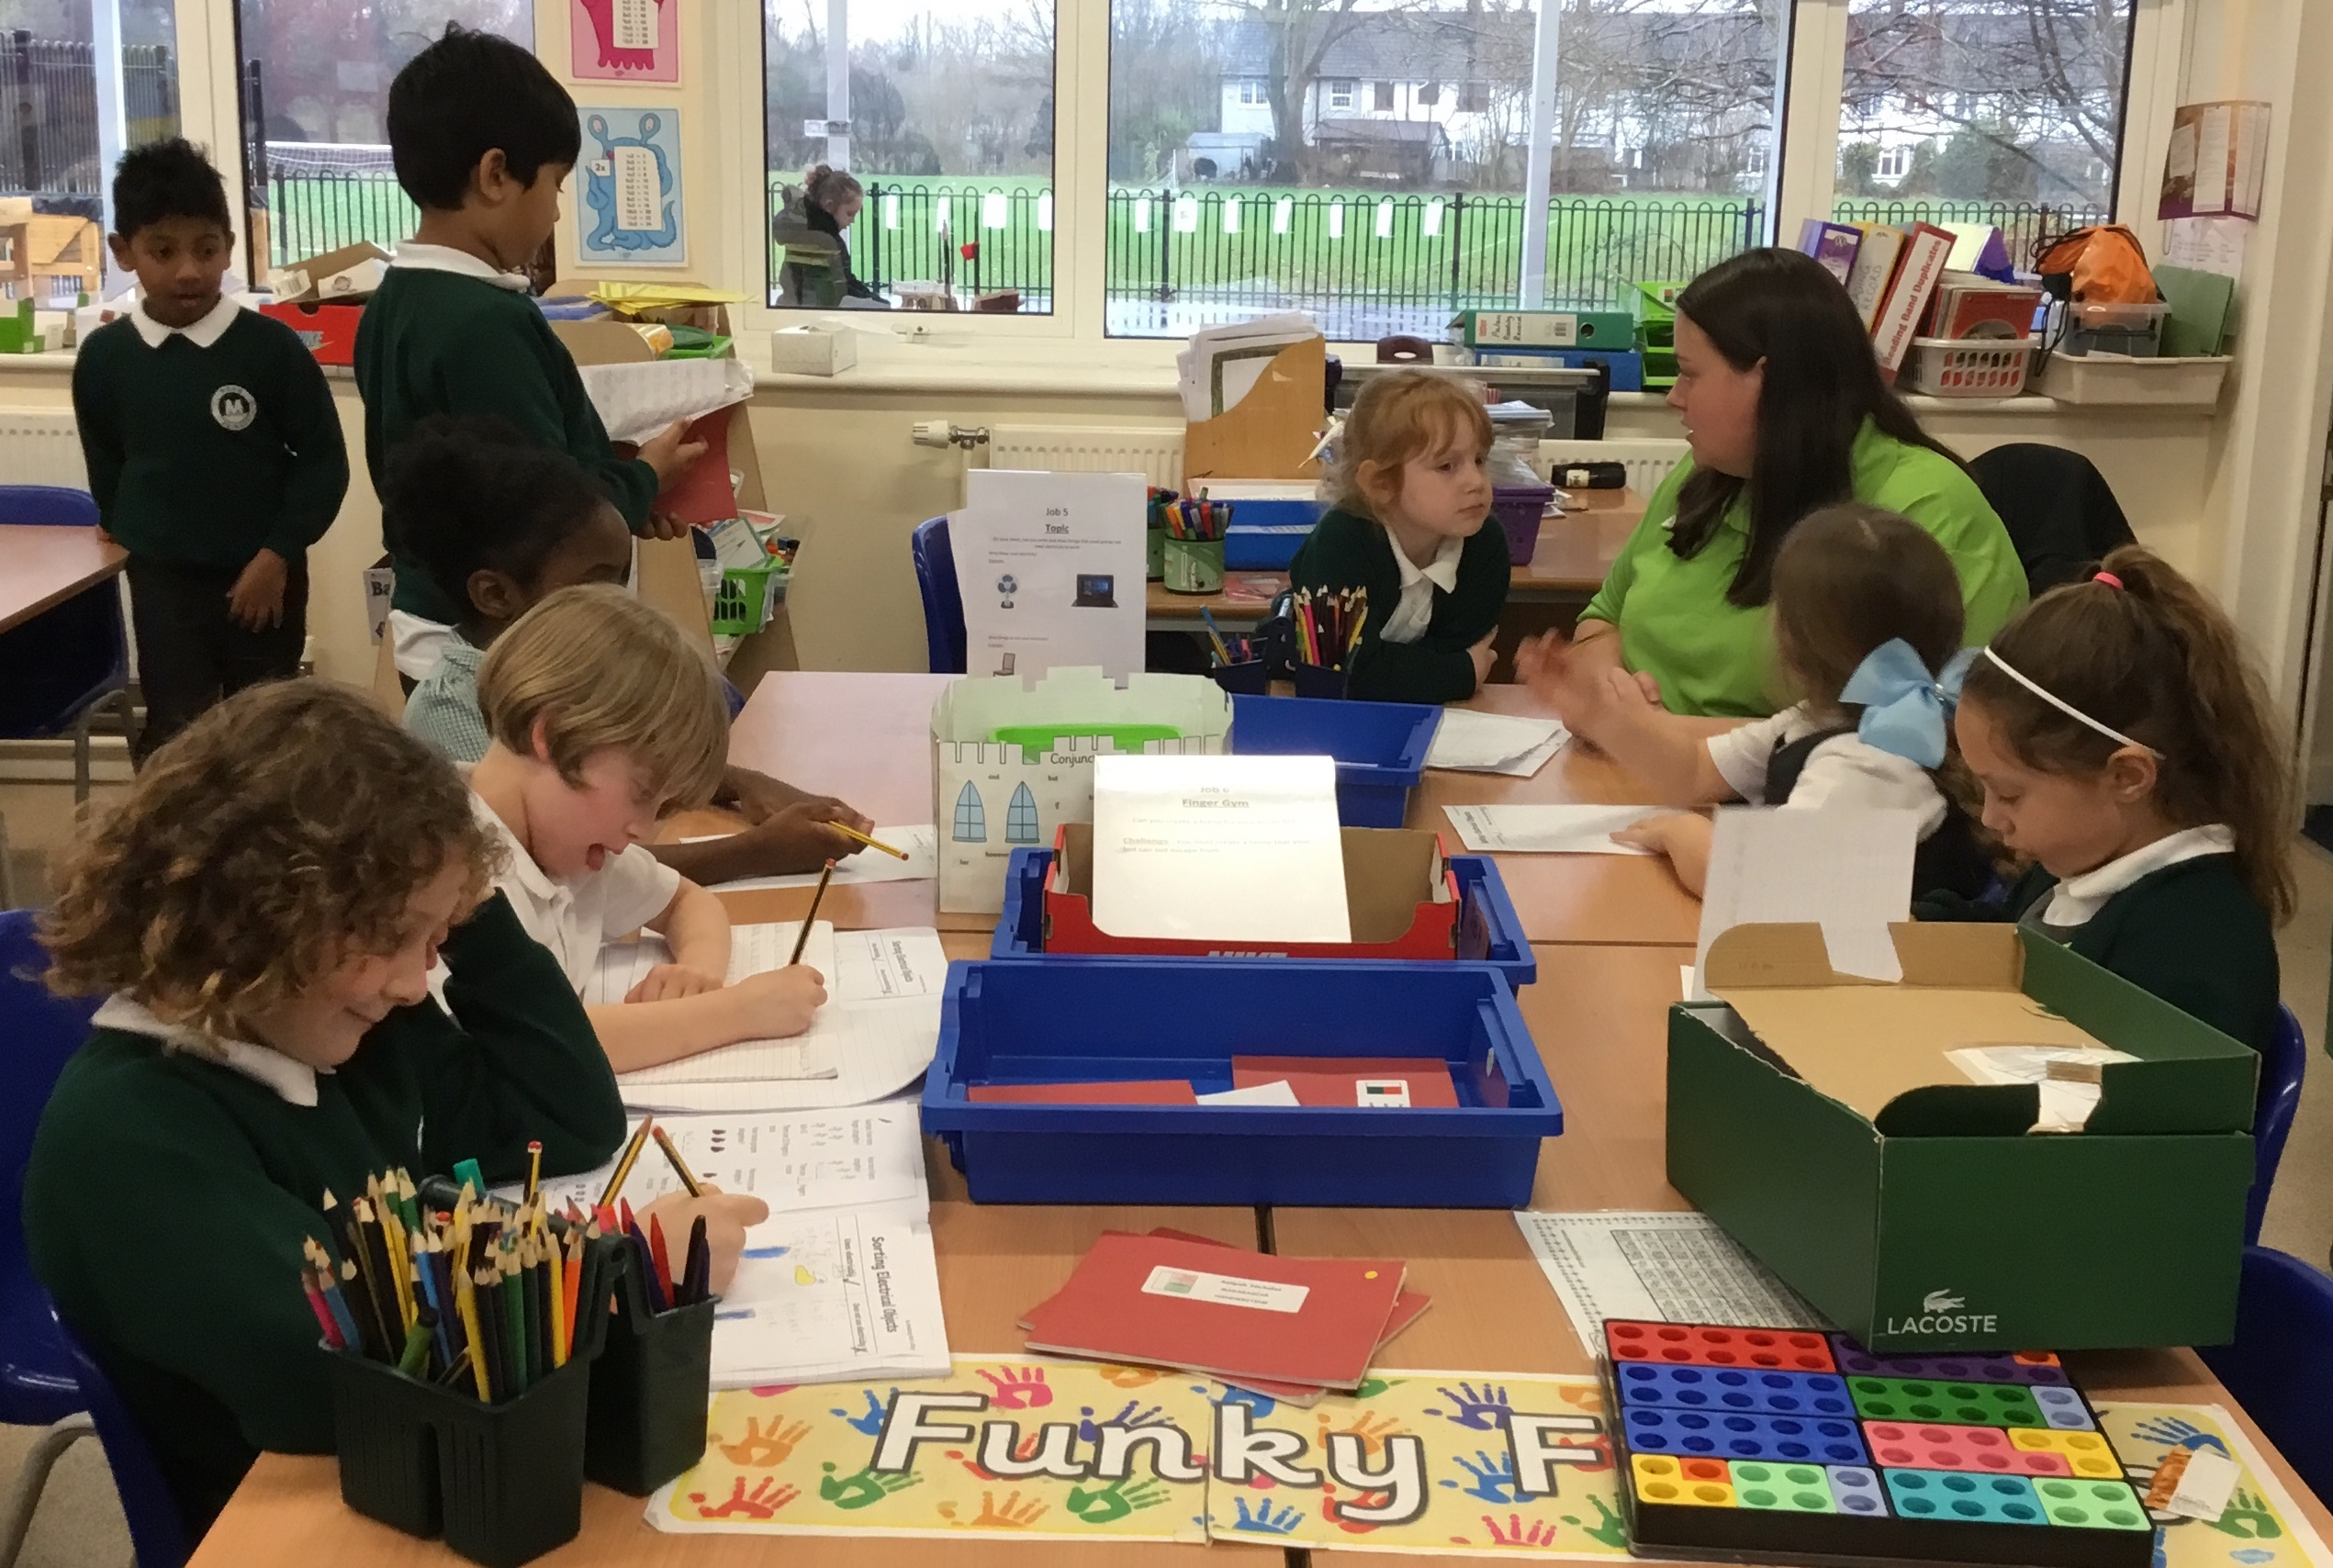 Asda Romford community champion Liz Brown helping pupils at Mead Primary School